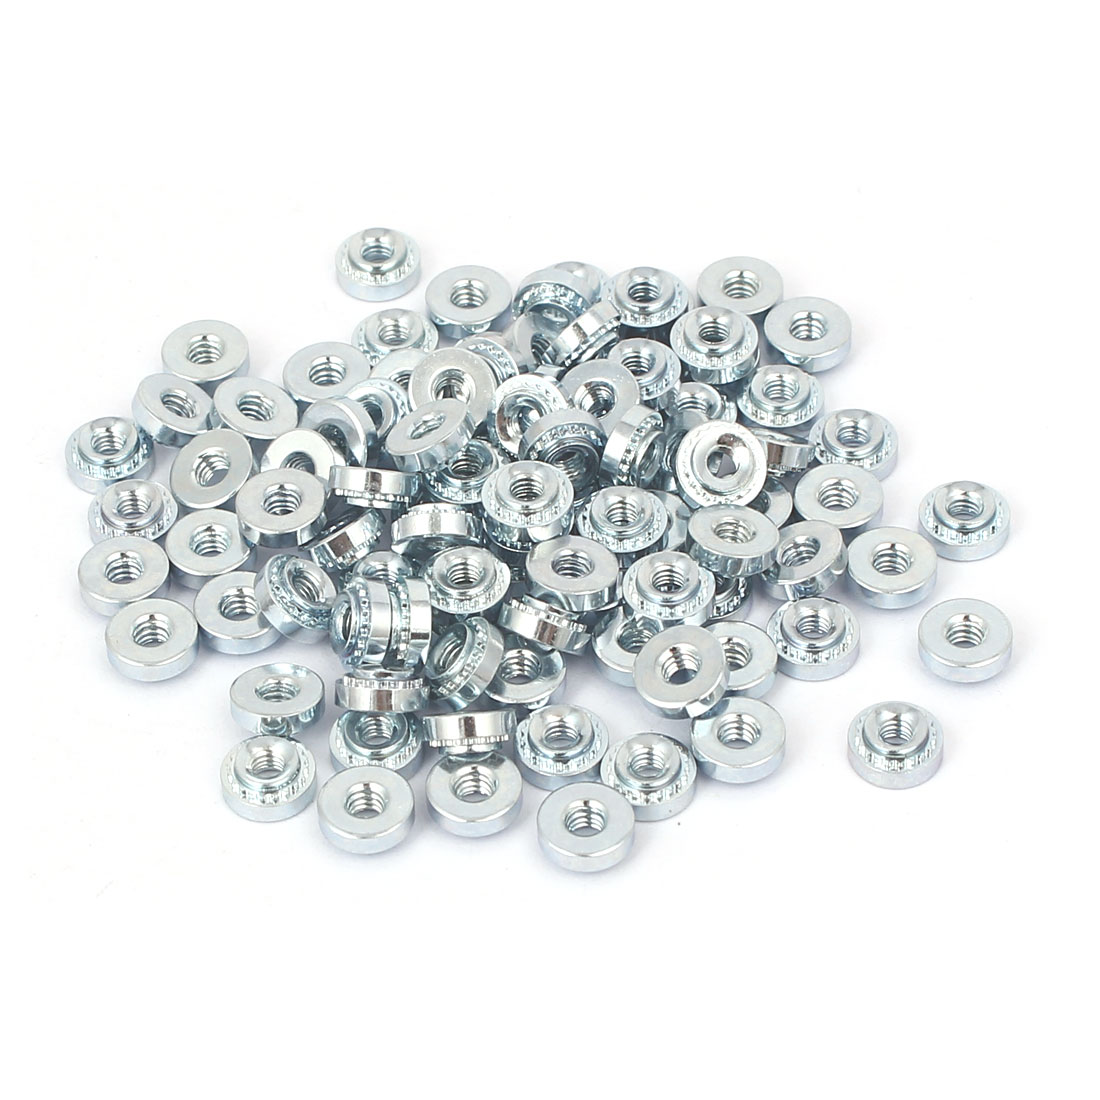 S-M2.5-1 Carbon Steel Self Clinching Rivet Nut Fastener 100pcs for 1.0mm Thin Plates